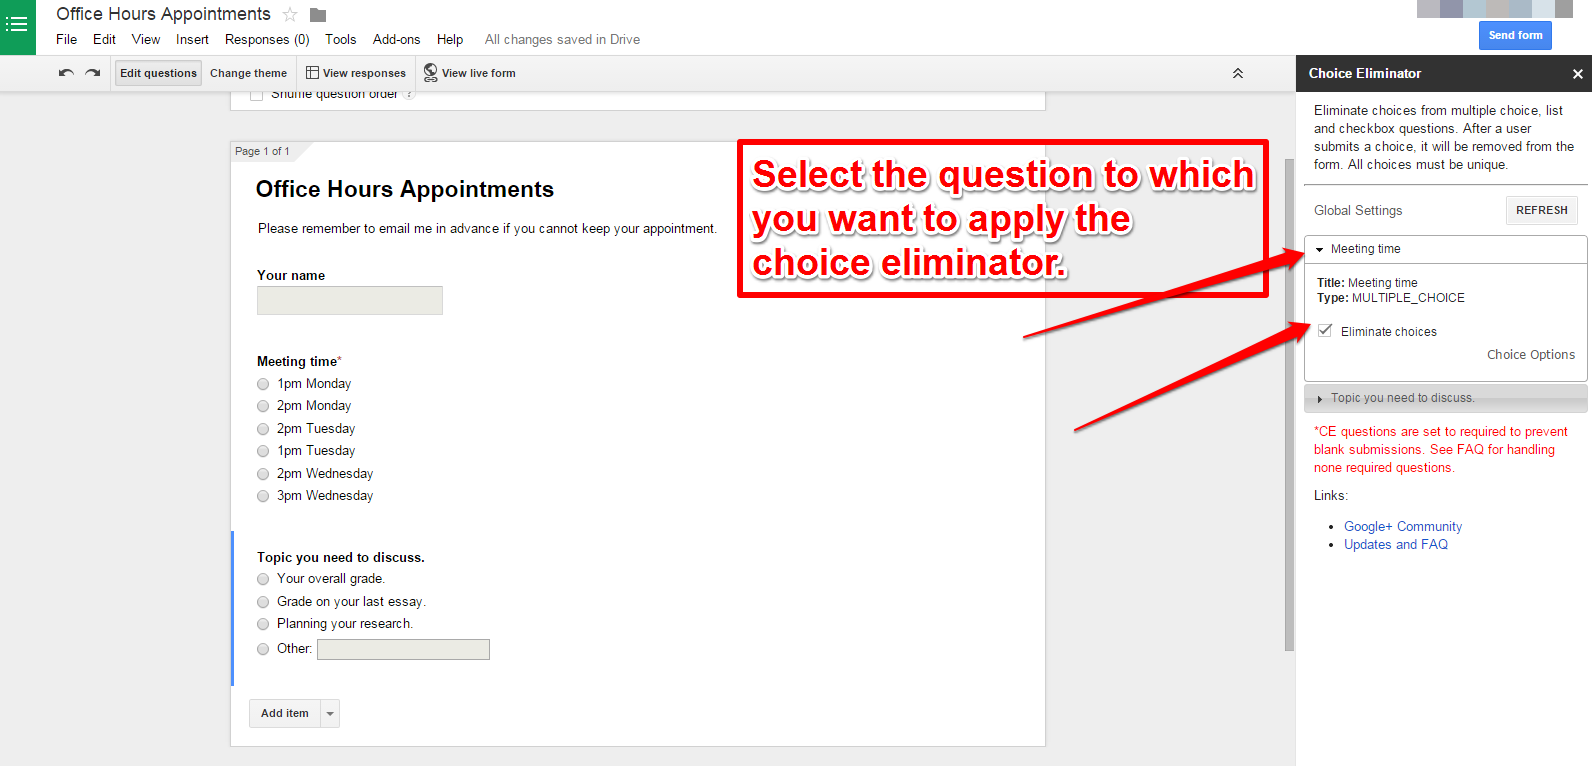 How to Eliminate Choices as They're Used on Google Forms